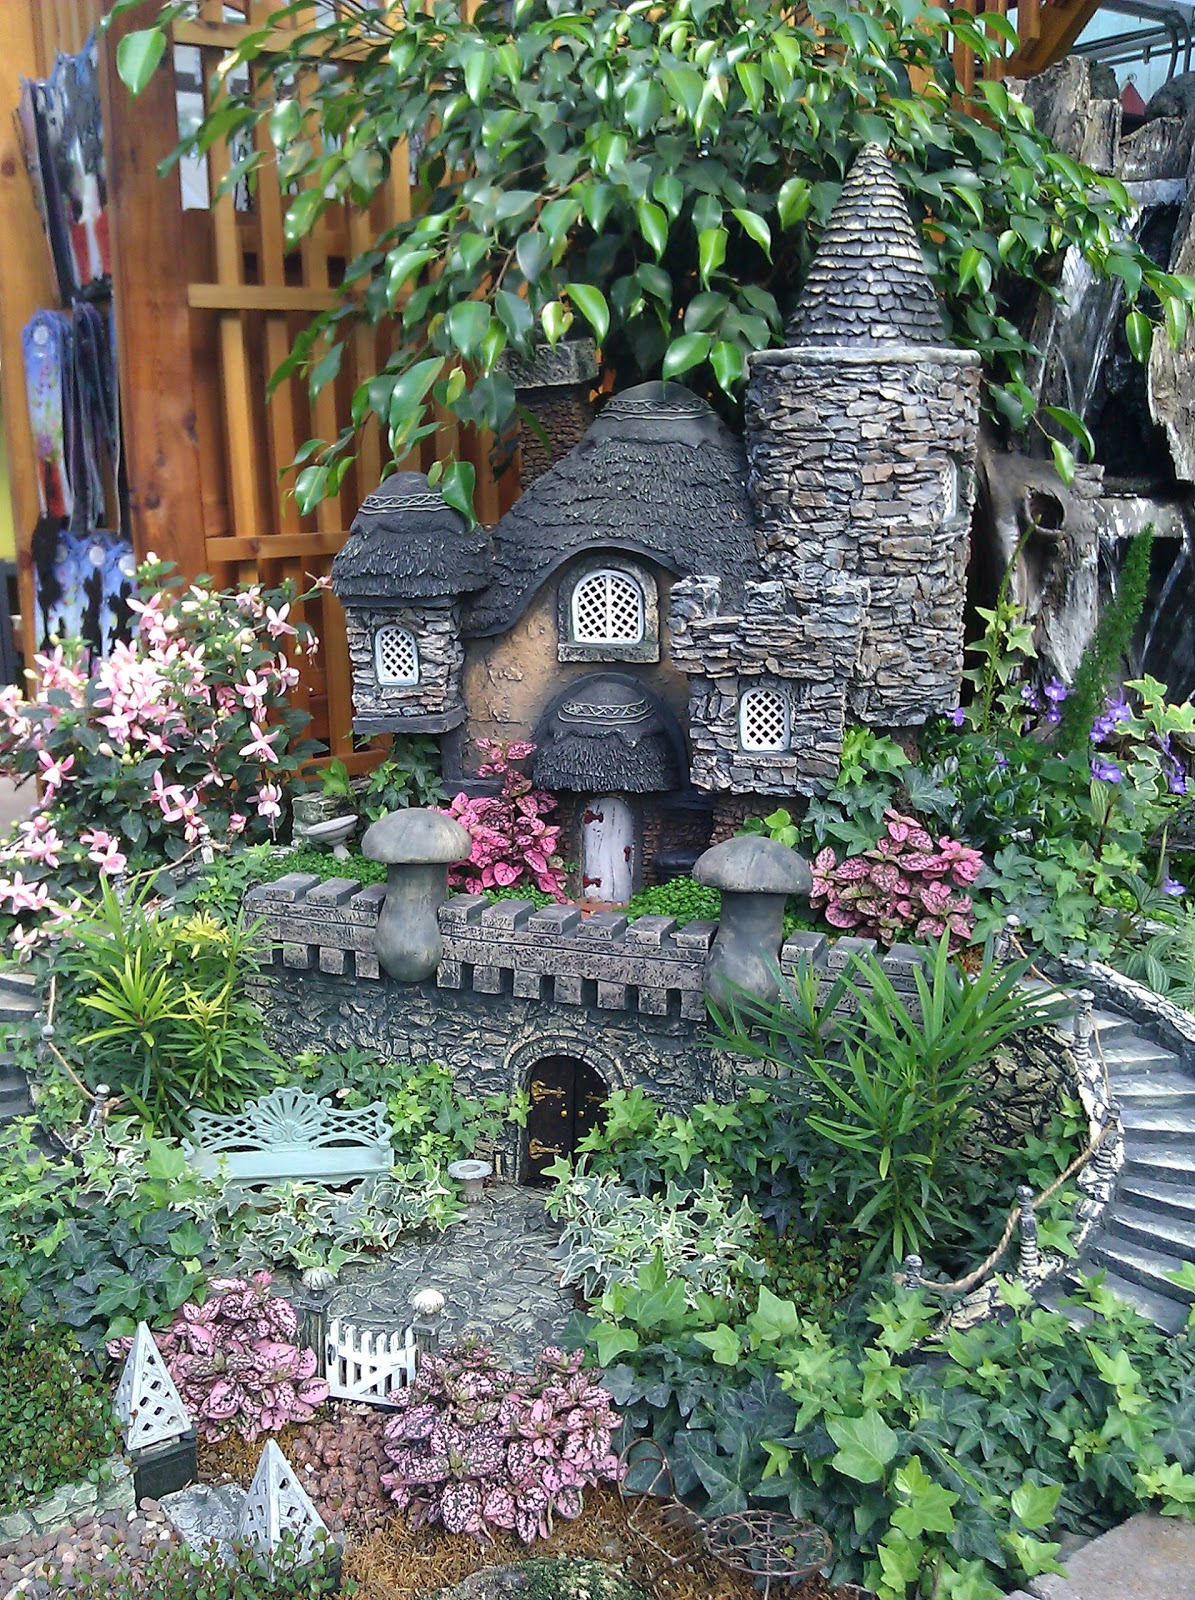 A fairy garden sweetwater style sweetwater style for Fairytale inspired home decor